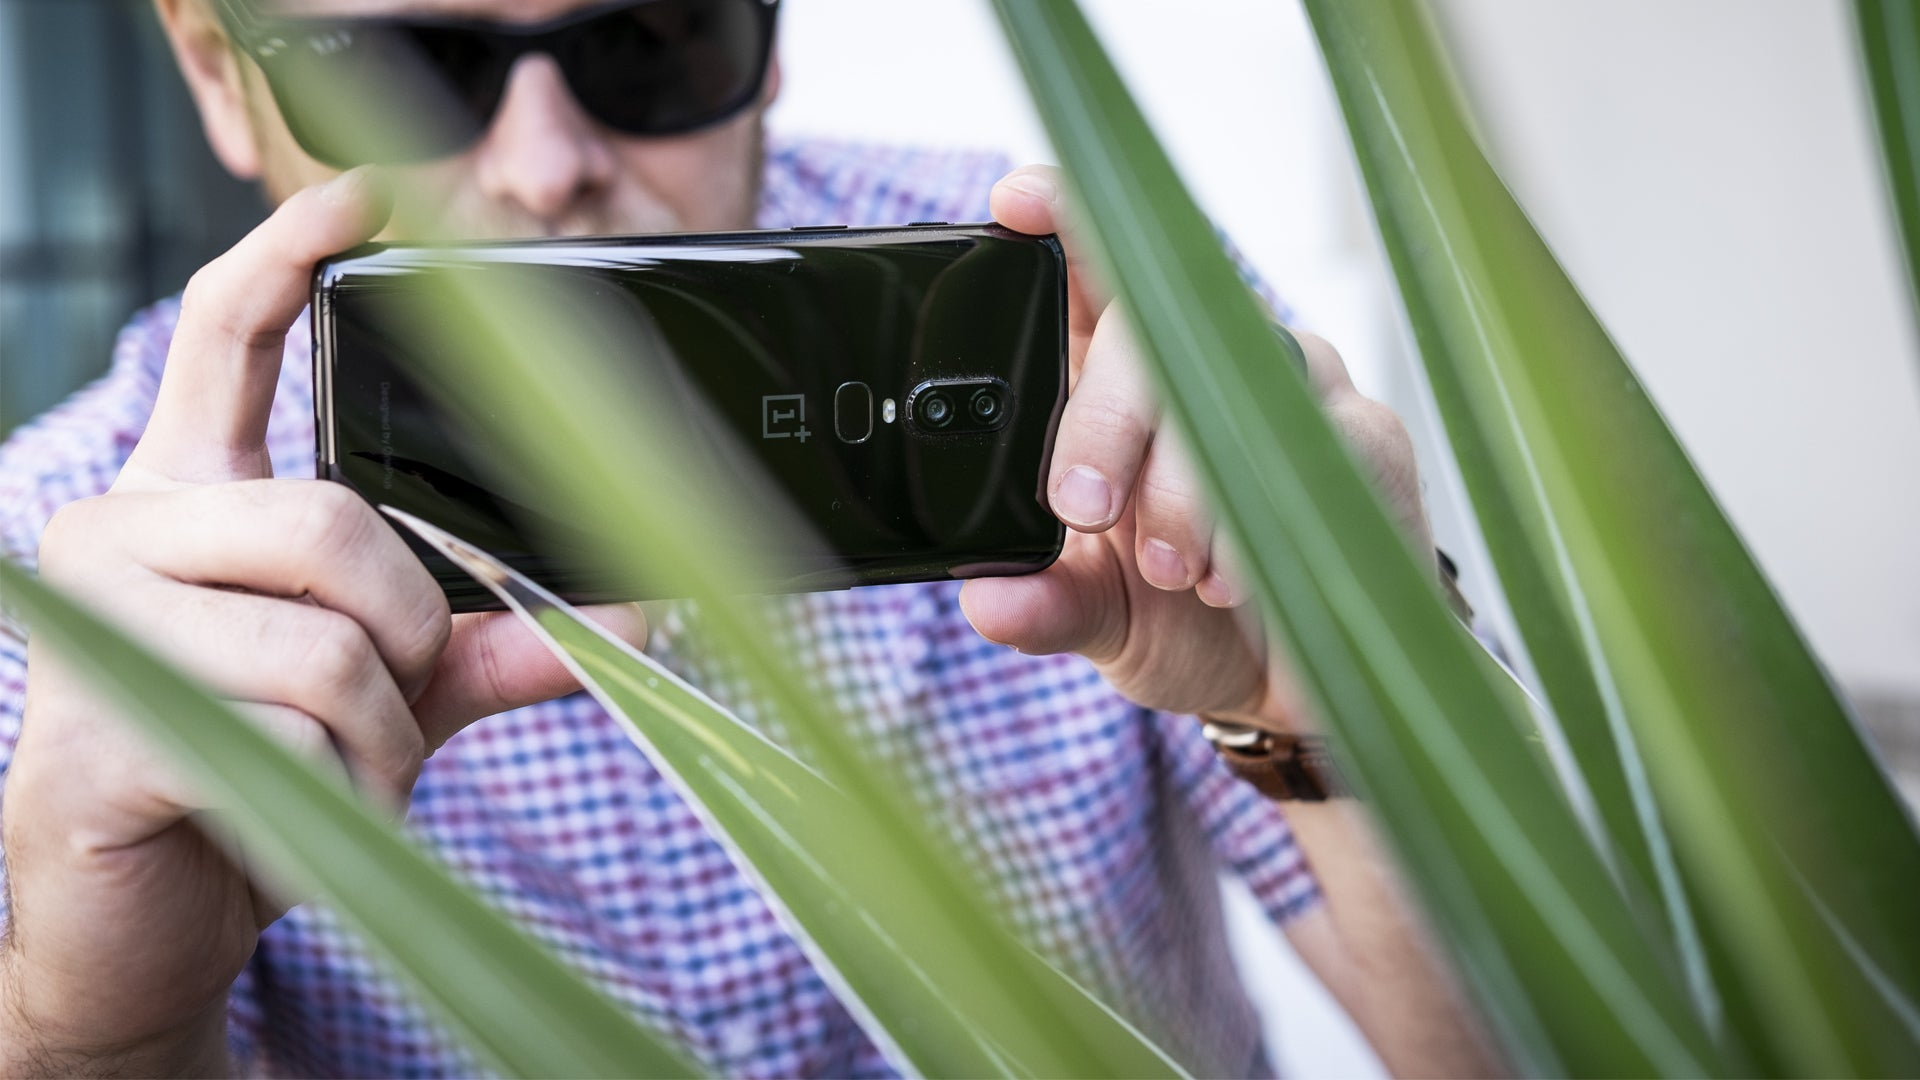 LG G7 camera test vs OnePlus 6, Sony Xperia XZ2, and Huawei P20 Pro